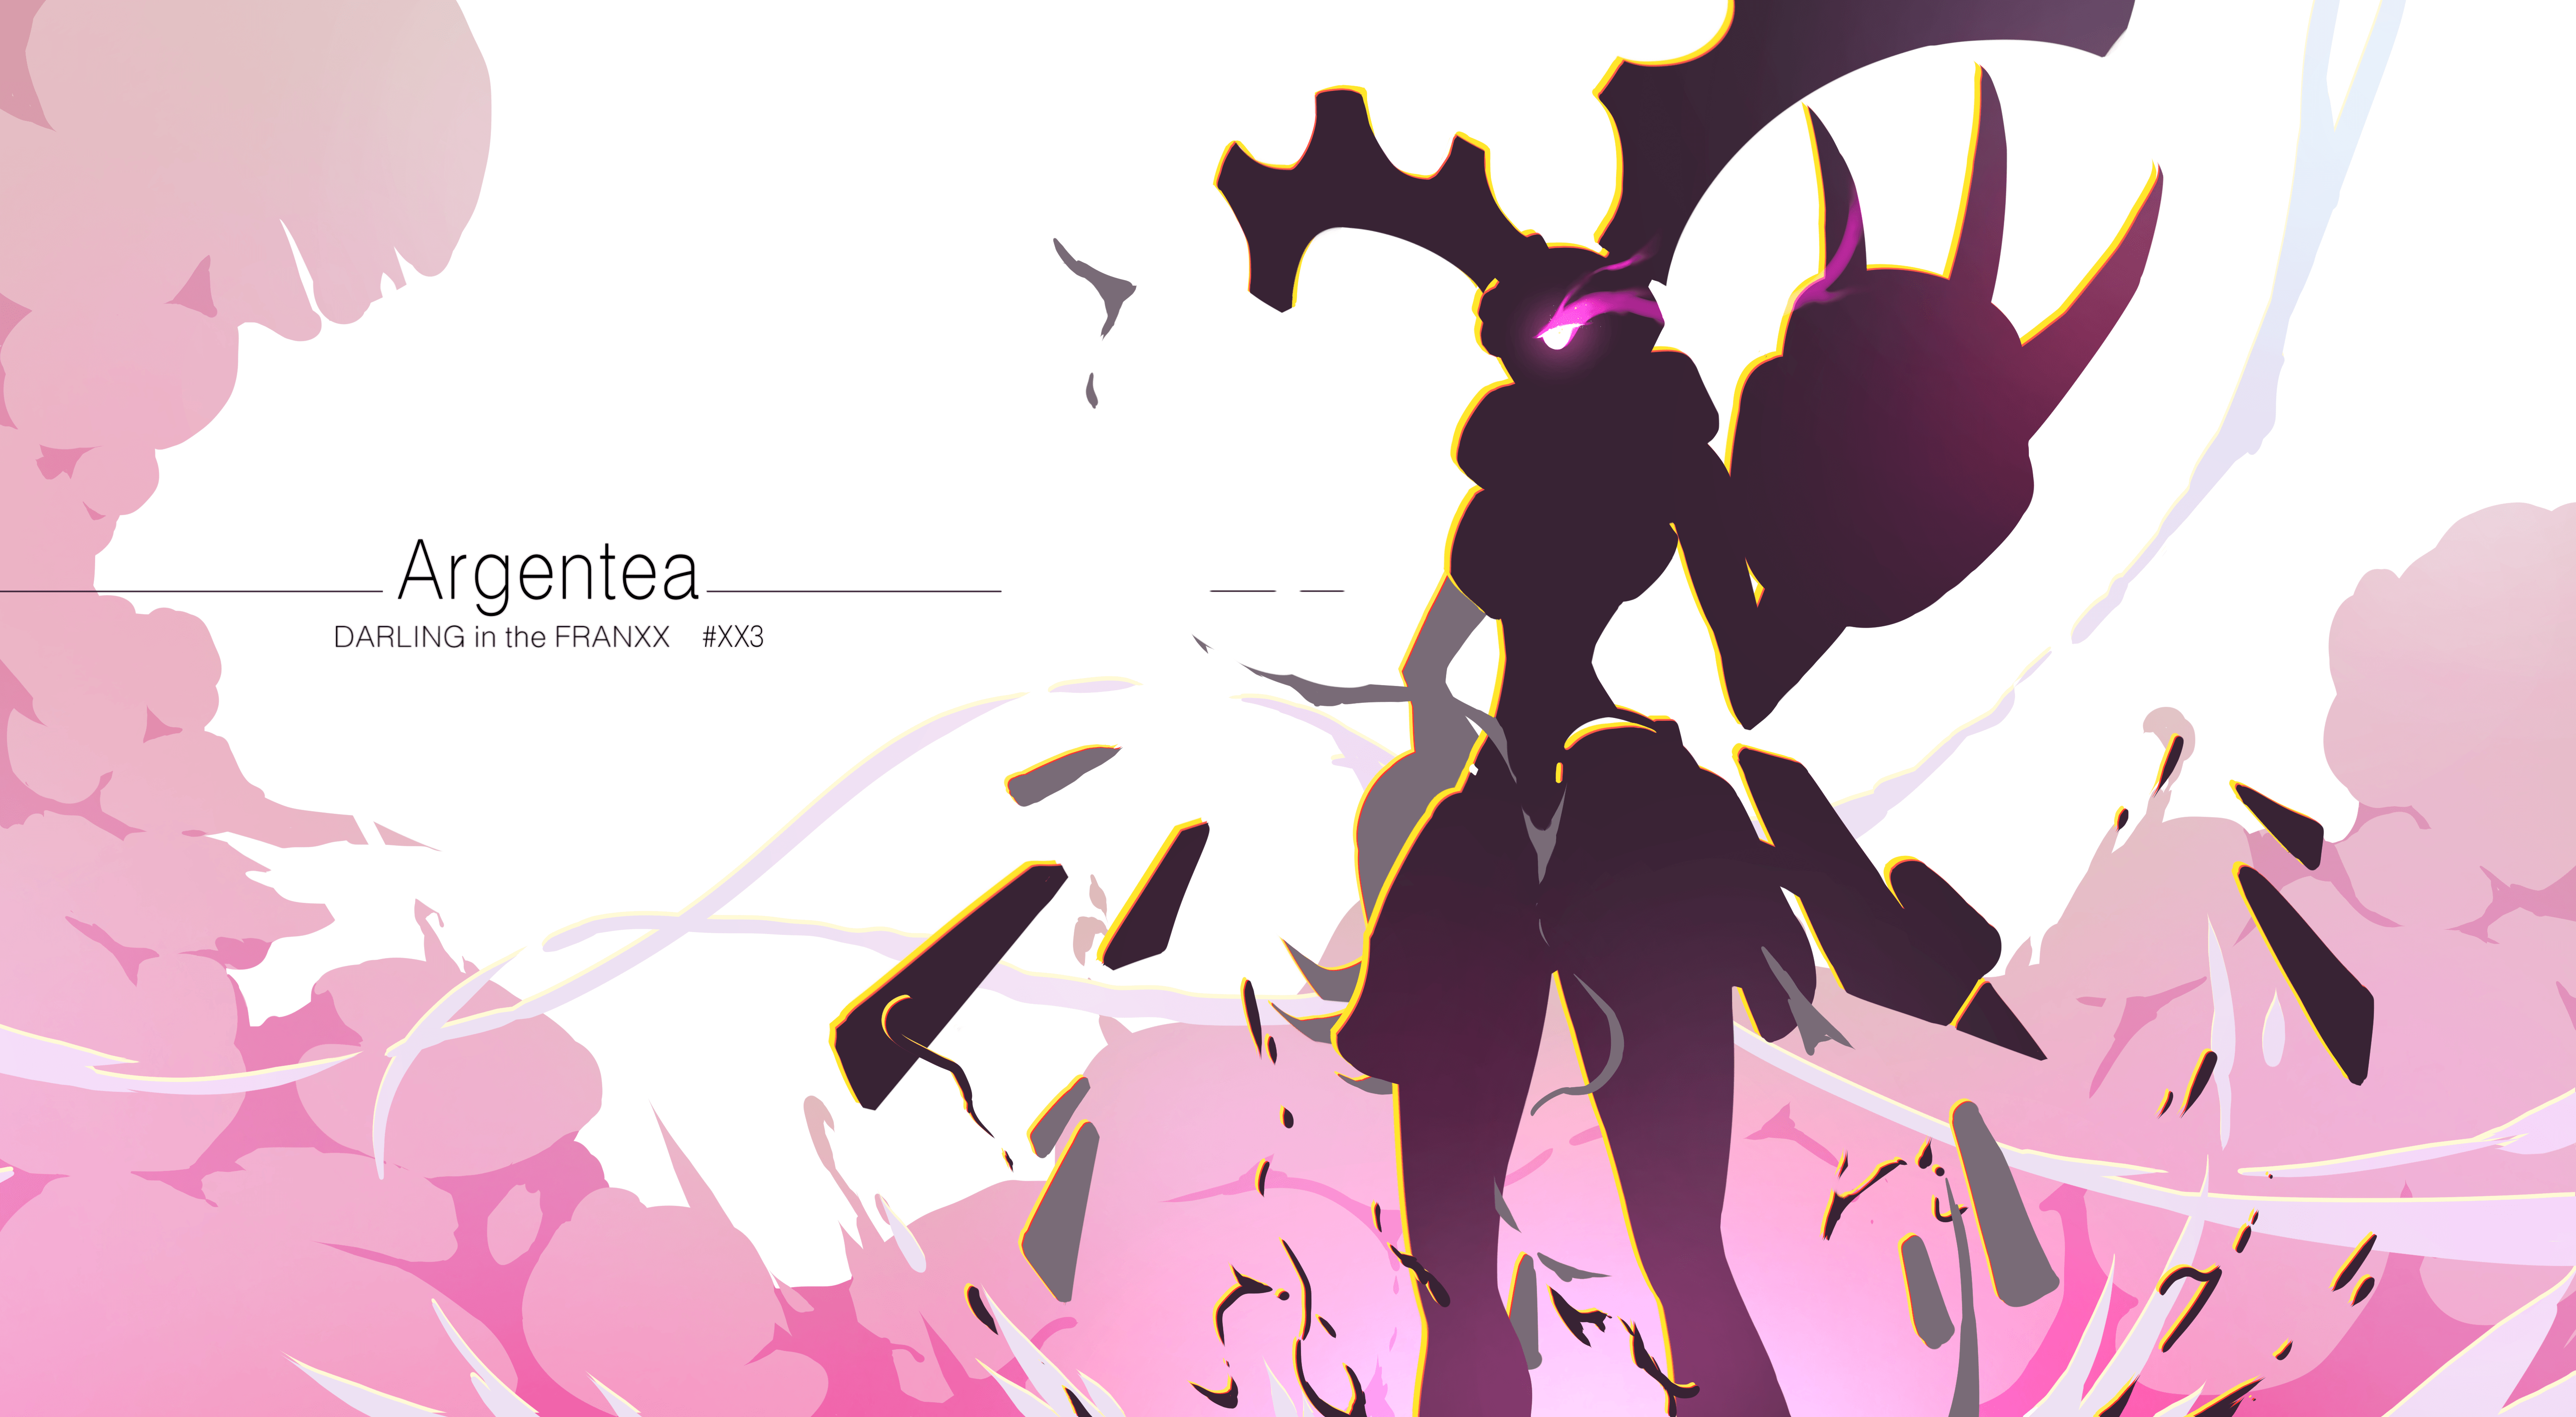 These Darling in the FranXX wallpapers are amazing